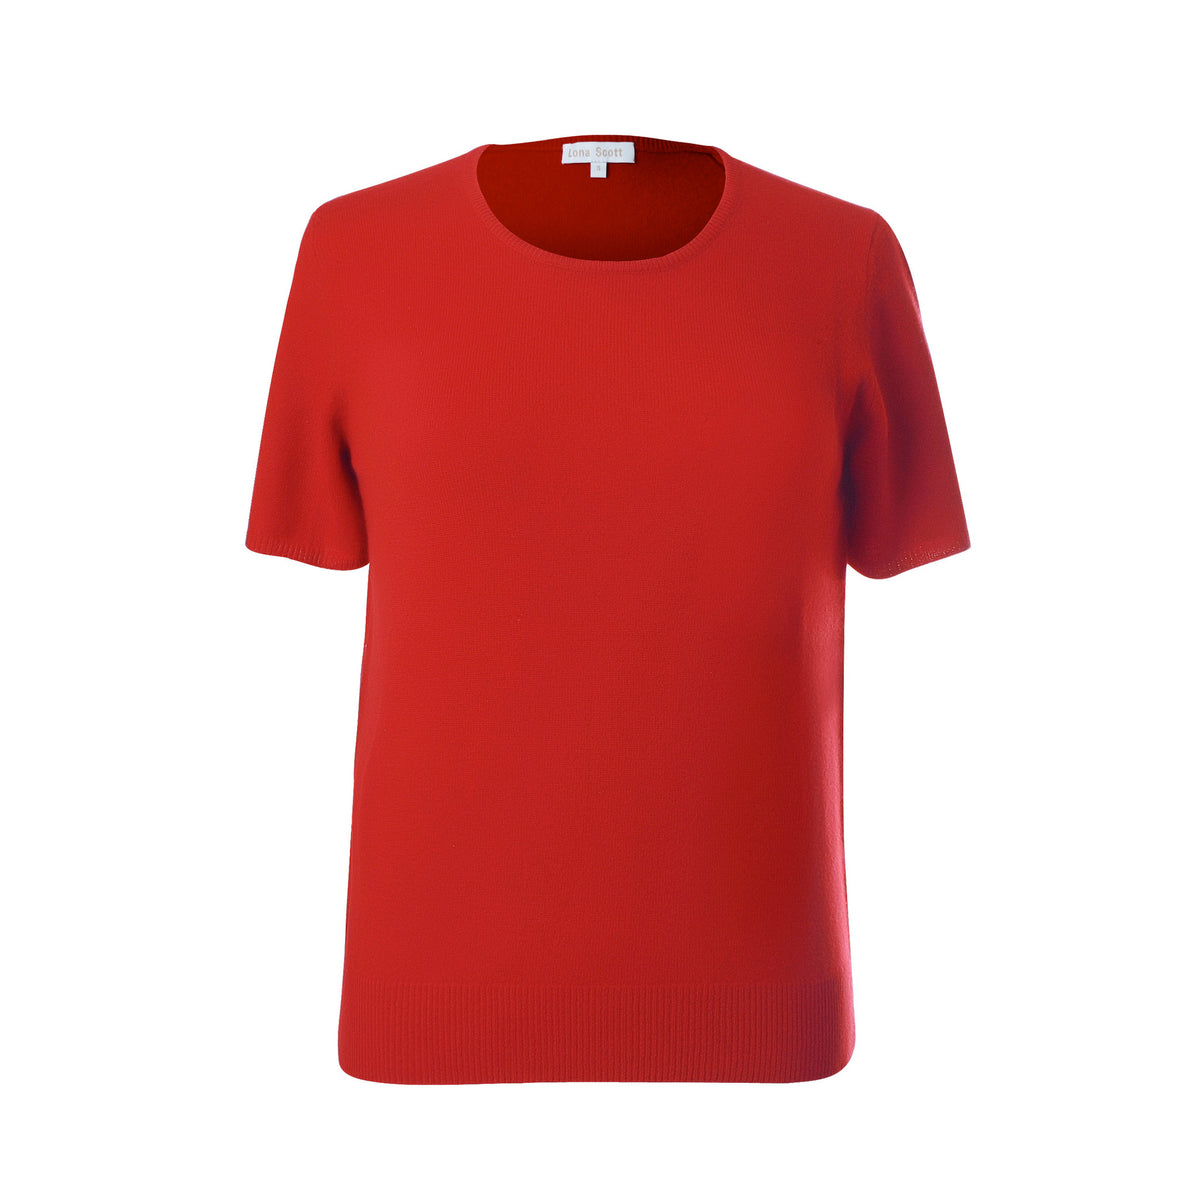 Ladies Red Cashmere Sweater | Short Sleeve | The Cashmere Choice London